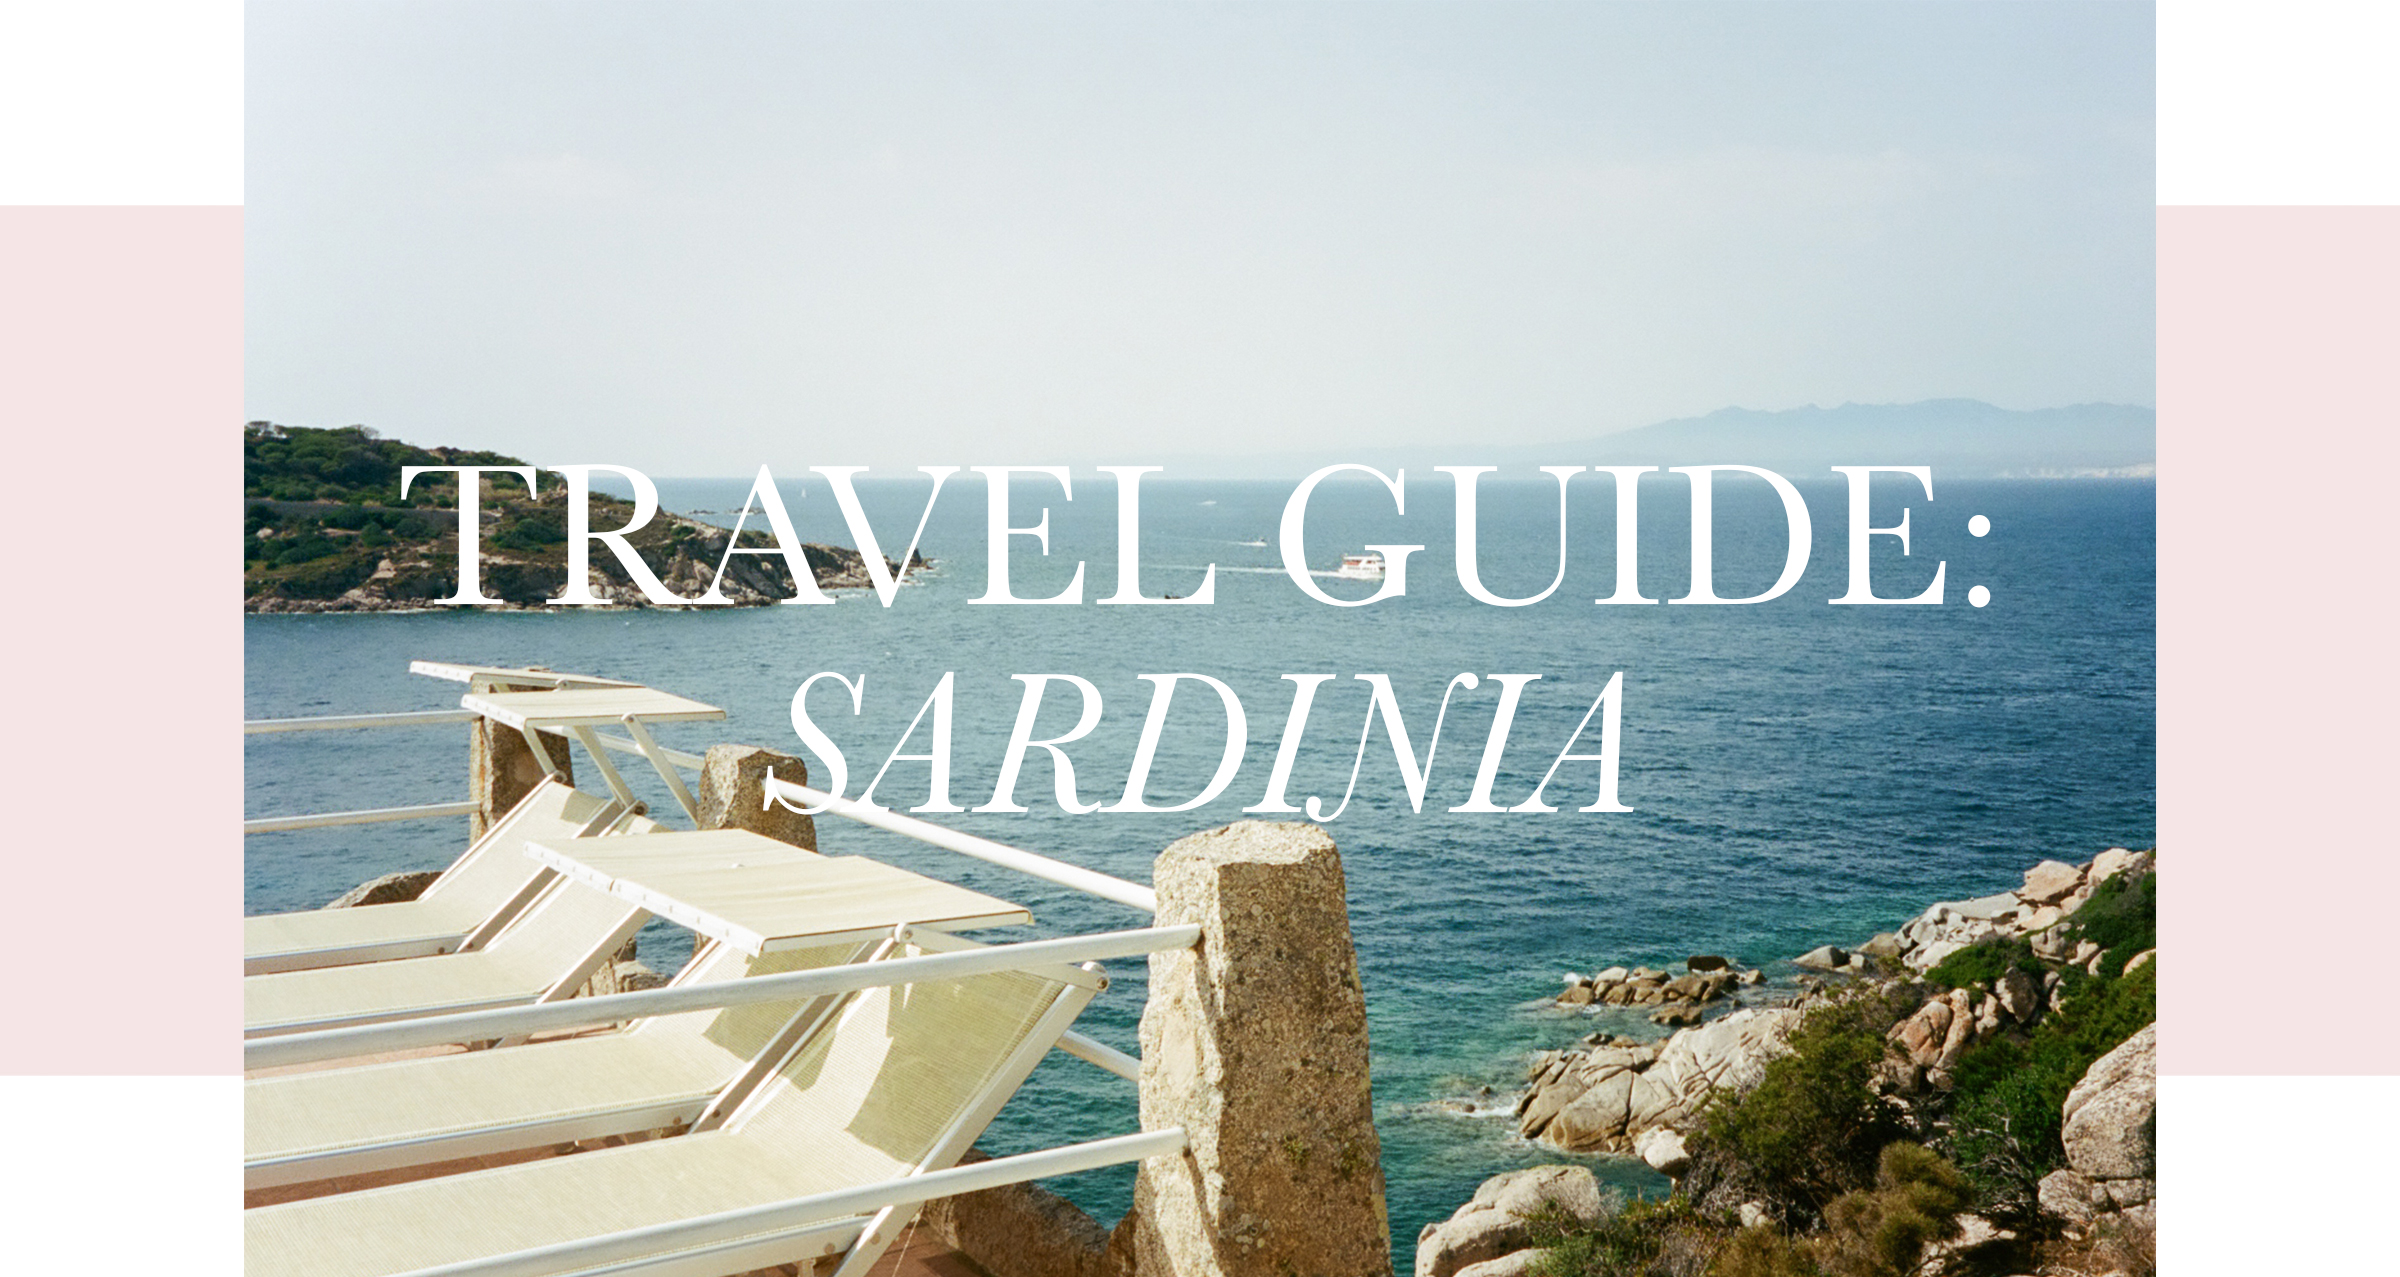 TRAVEL-GUIDE-SARDINIA.jpg